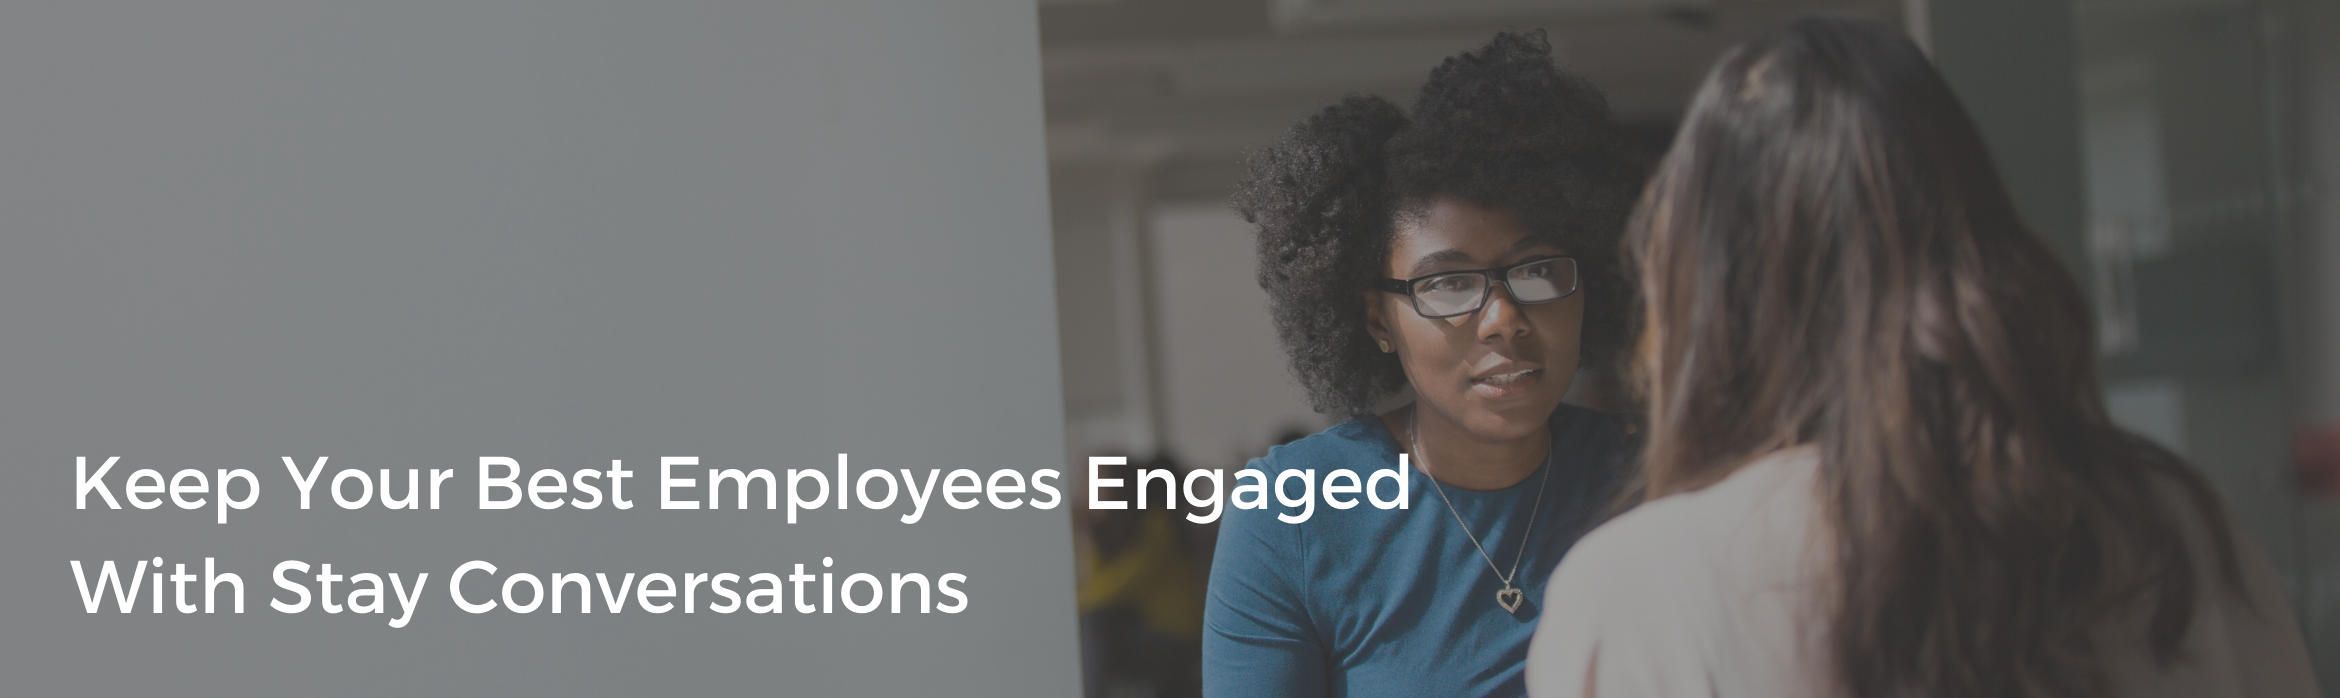 Keep Your Best Employees Engaged With Stay Conversations